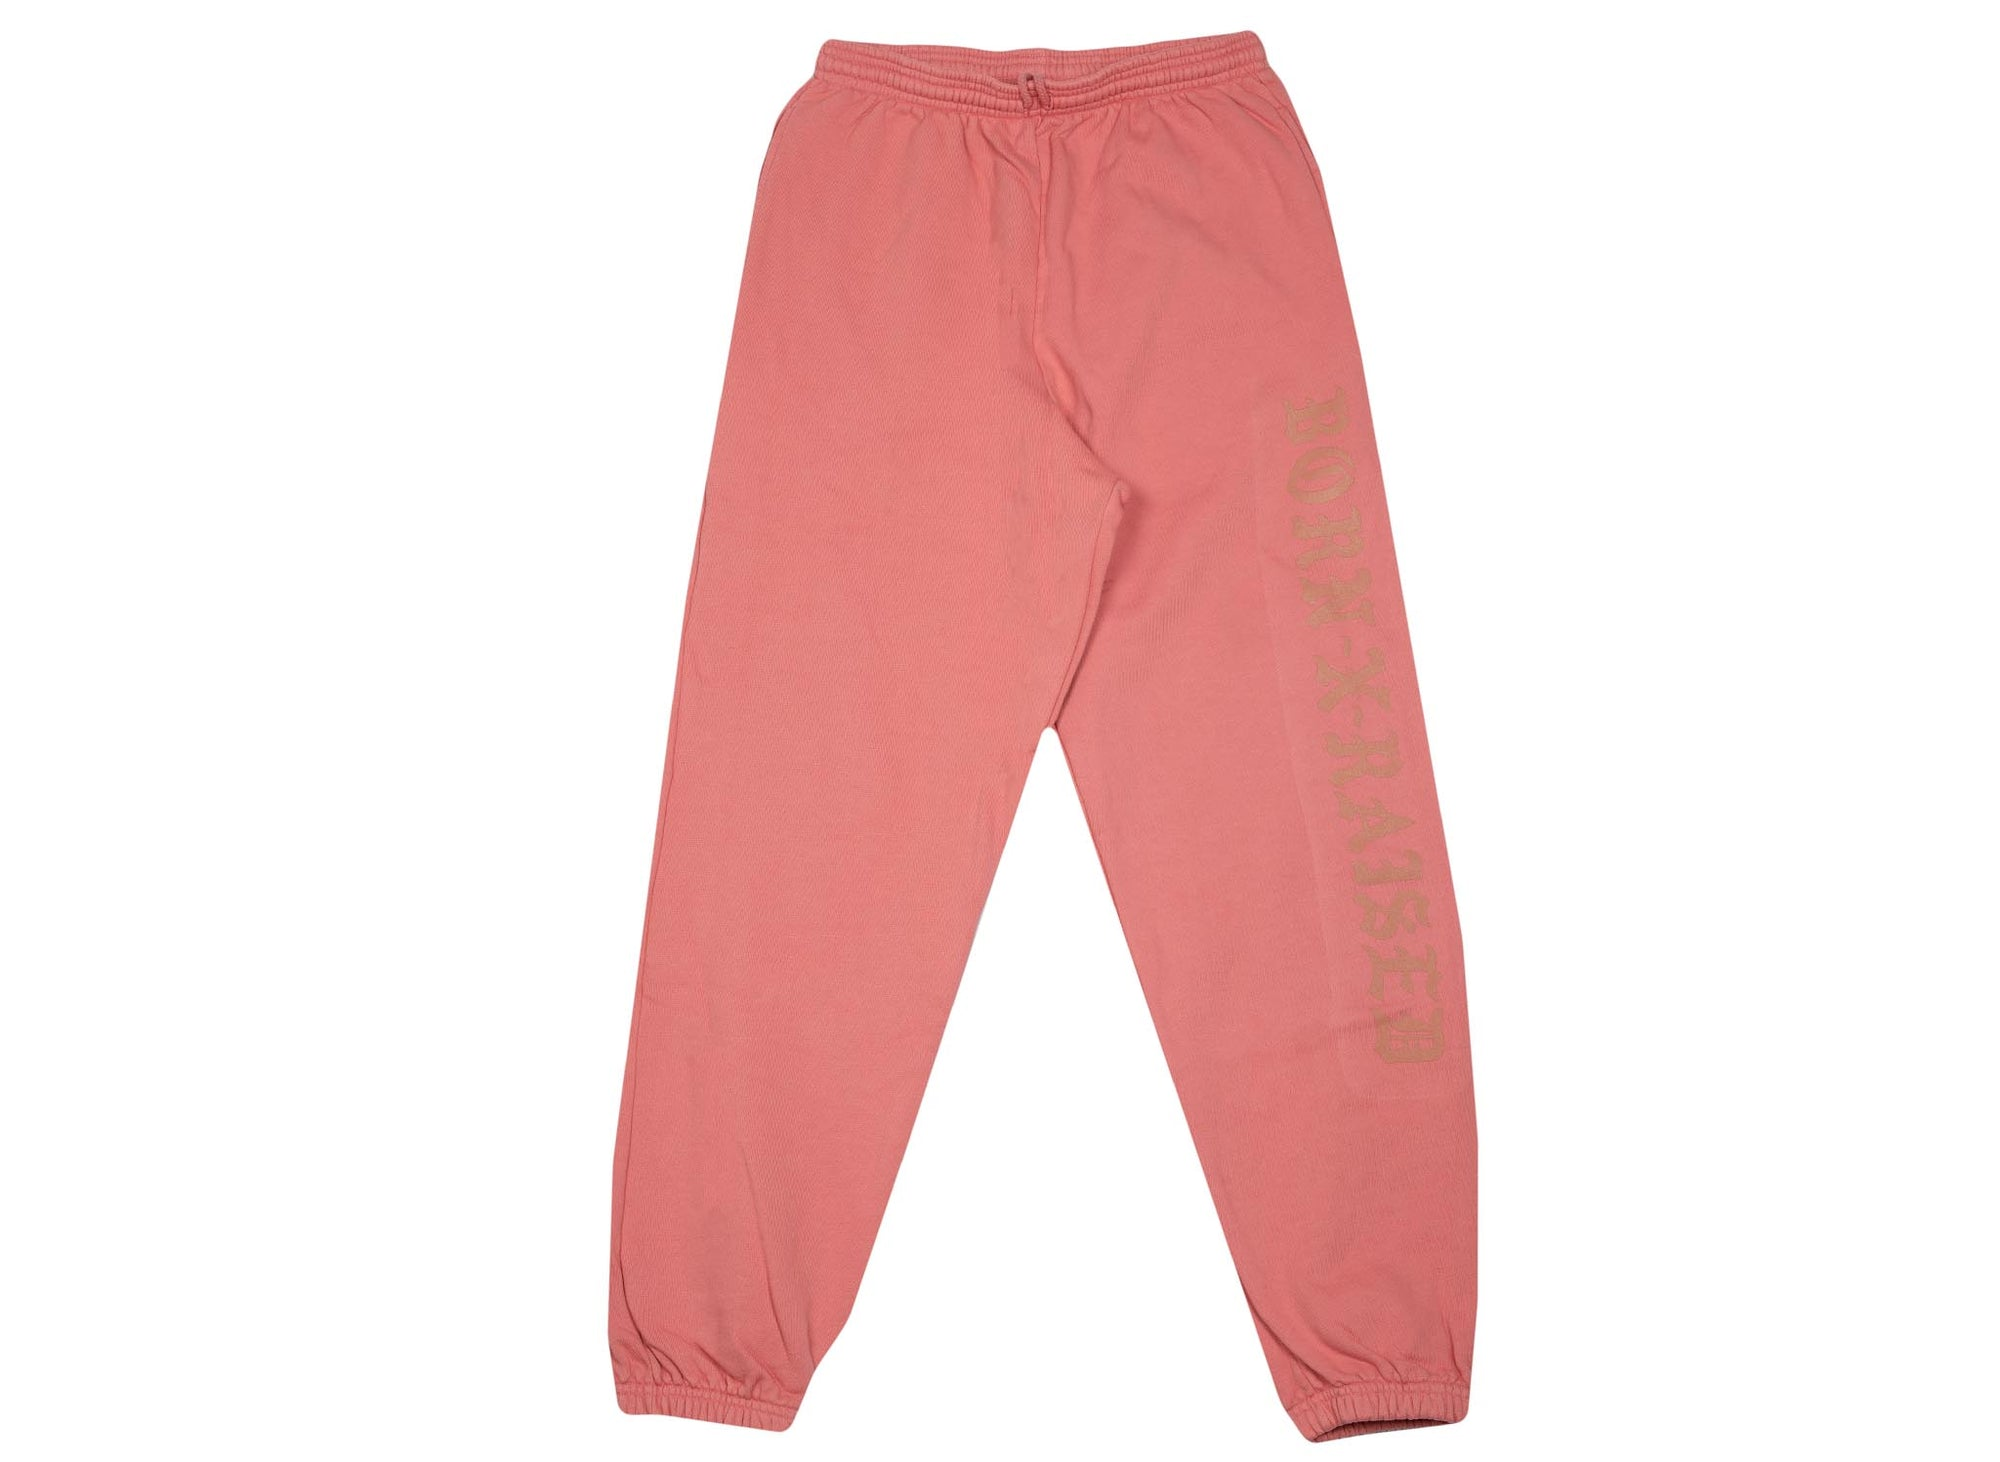 BORN x RAISED BXR FLOCKED SWEAT PANTS DUSTY ROSE